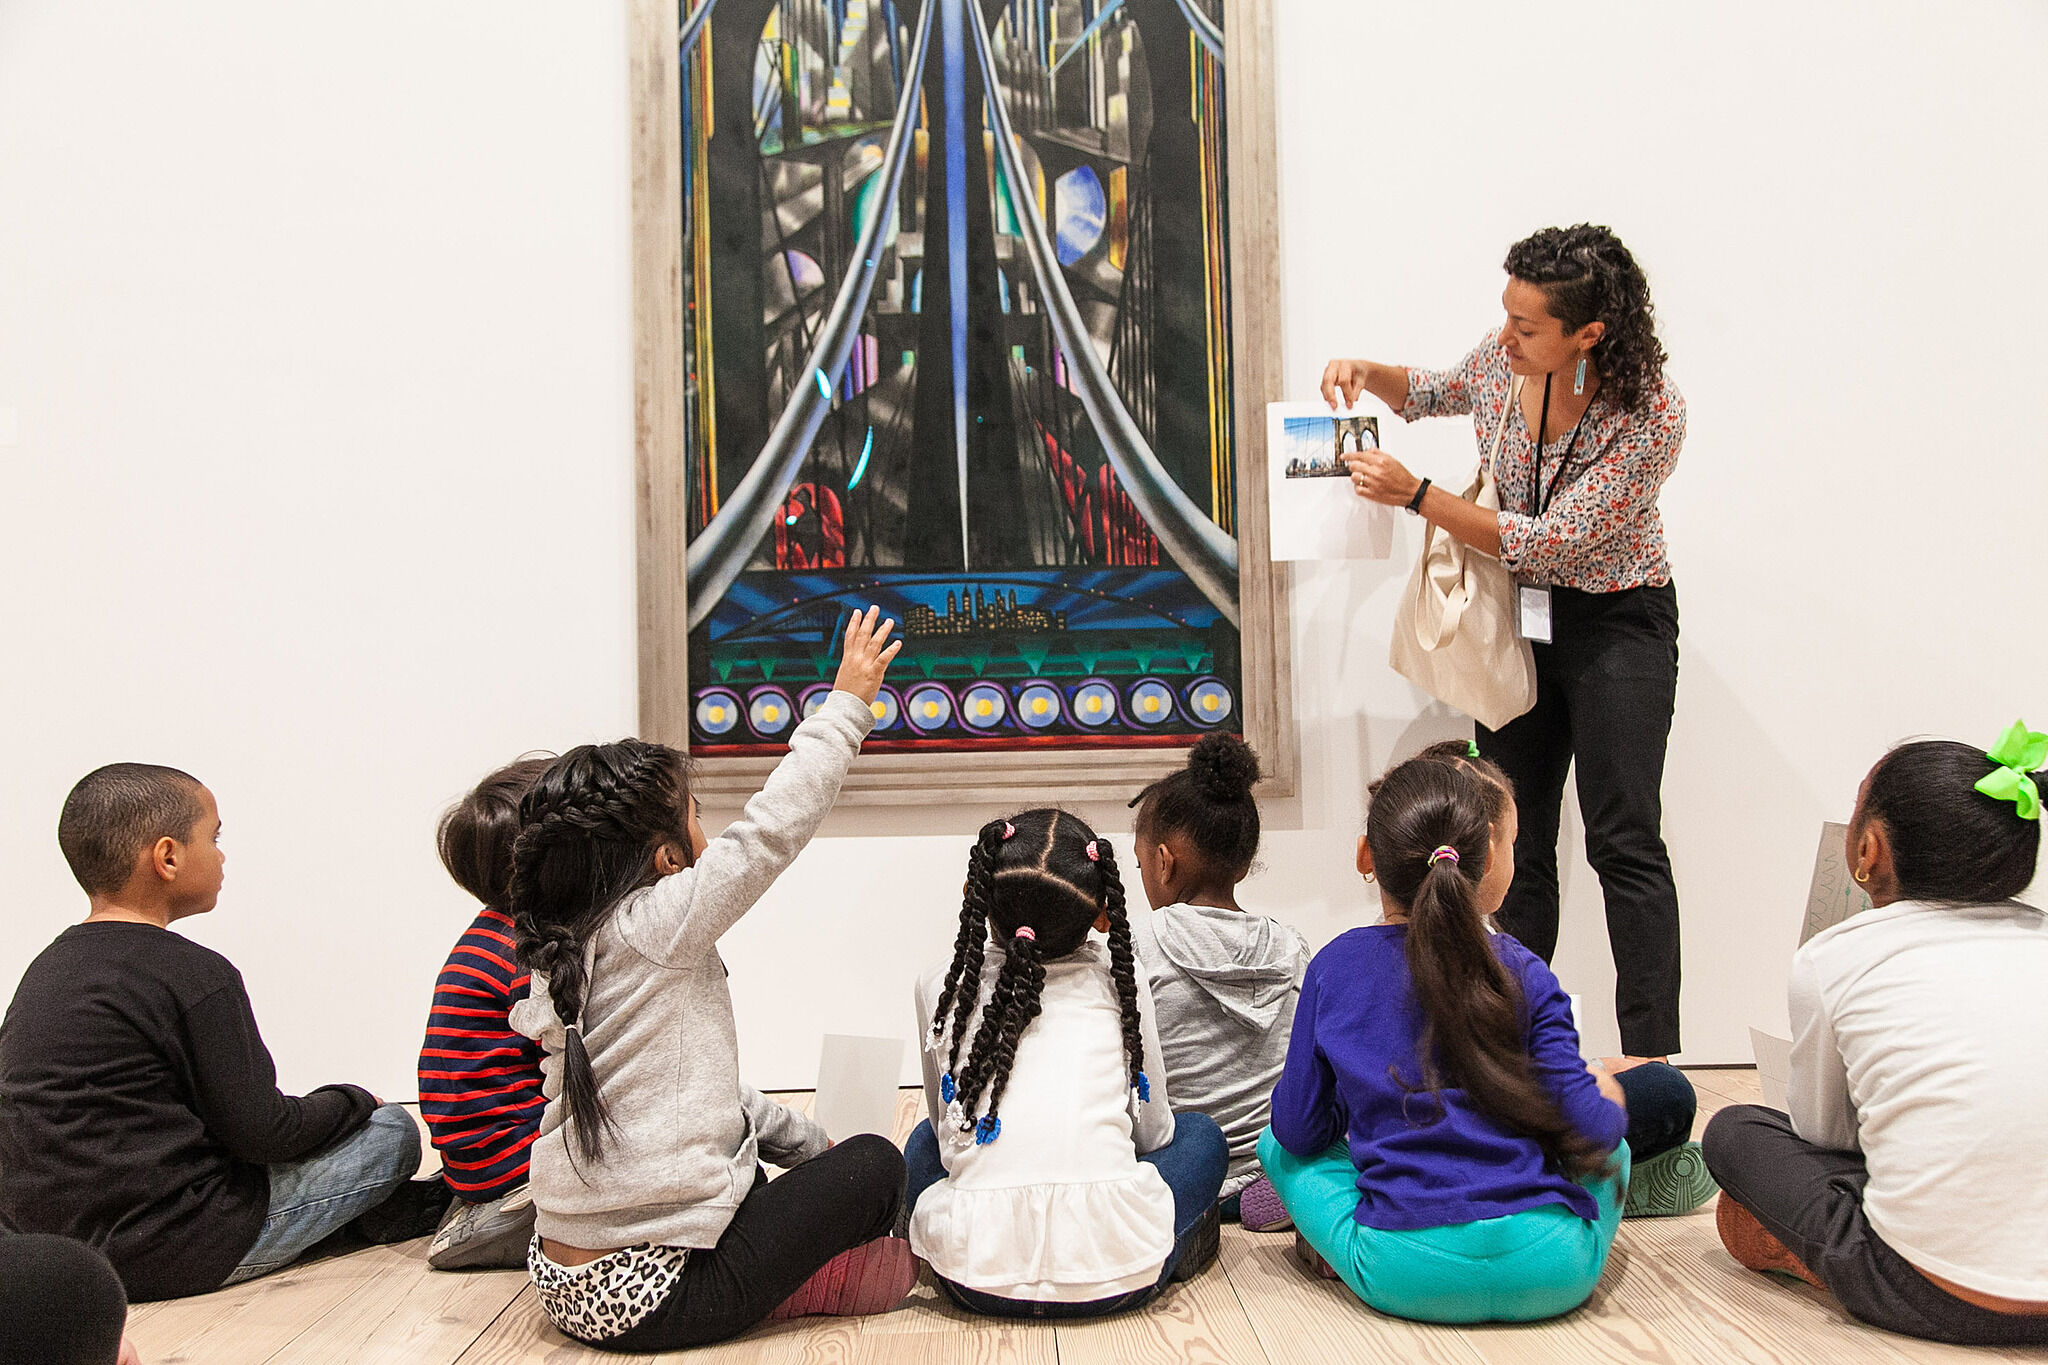 Kids look at a sculpture in the galleries